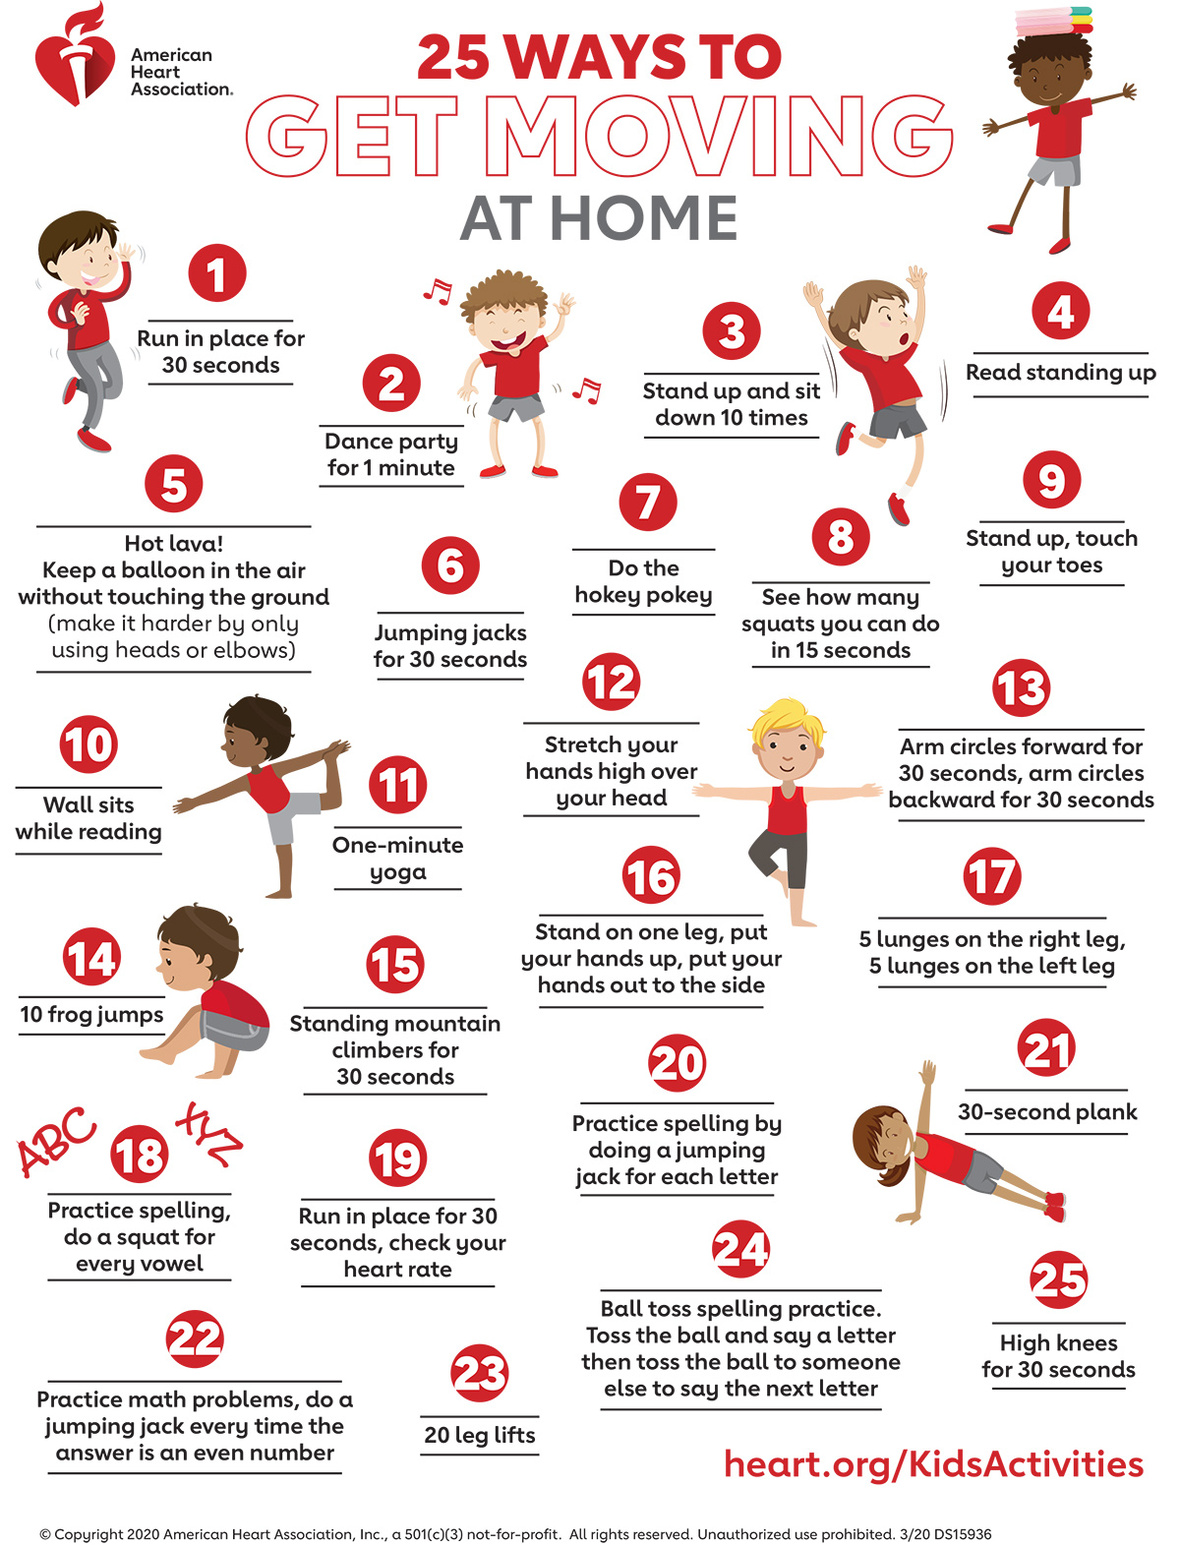 25 Ways to Get Moving at home